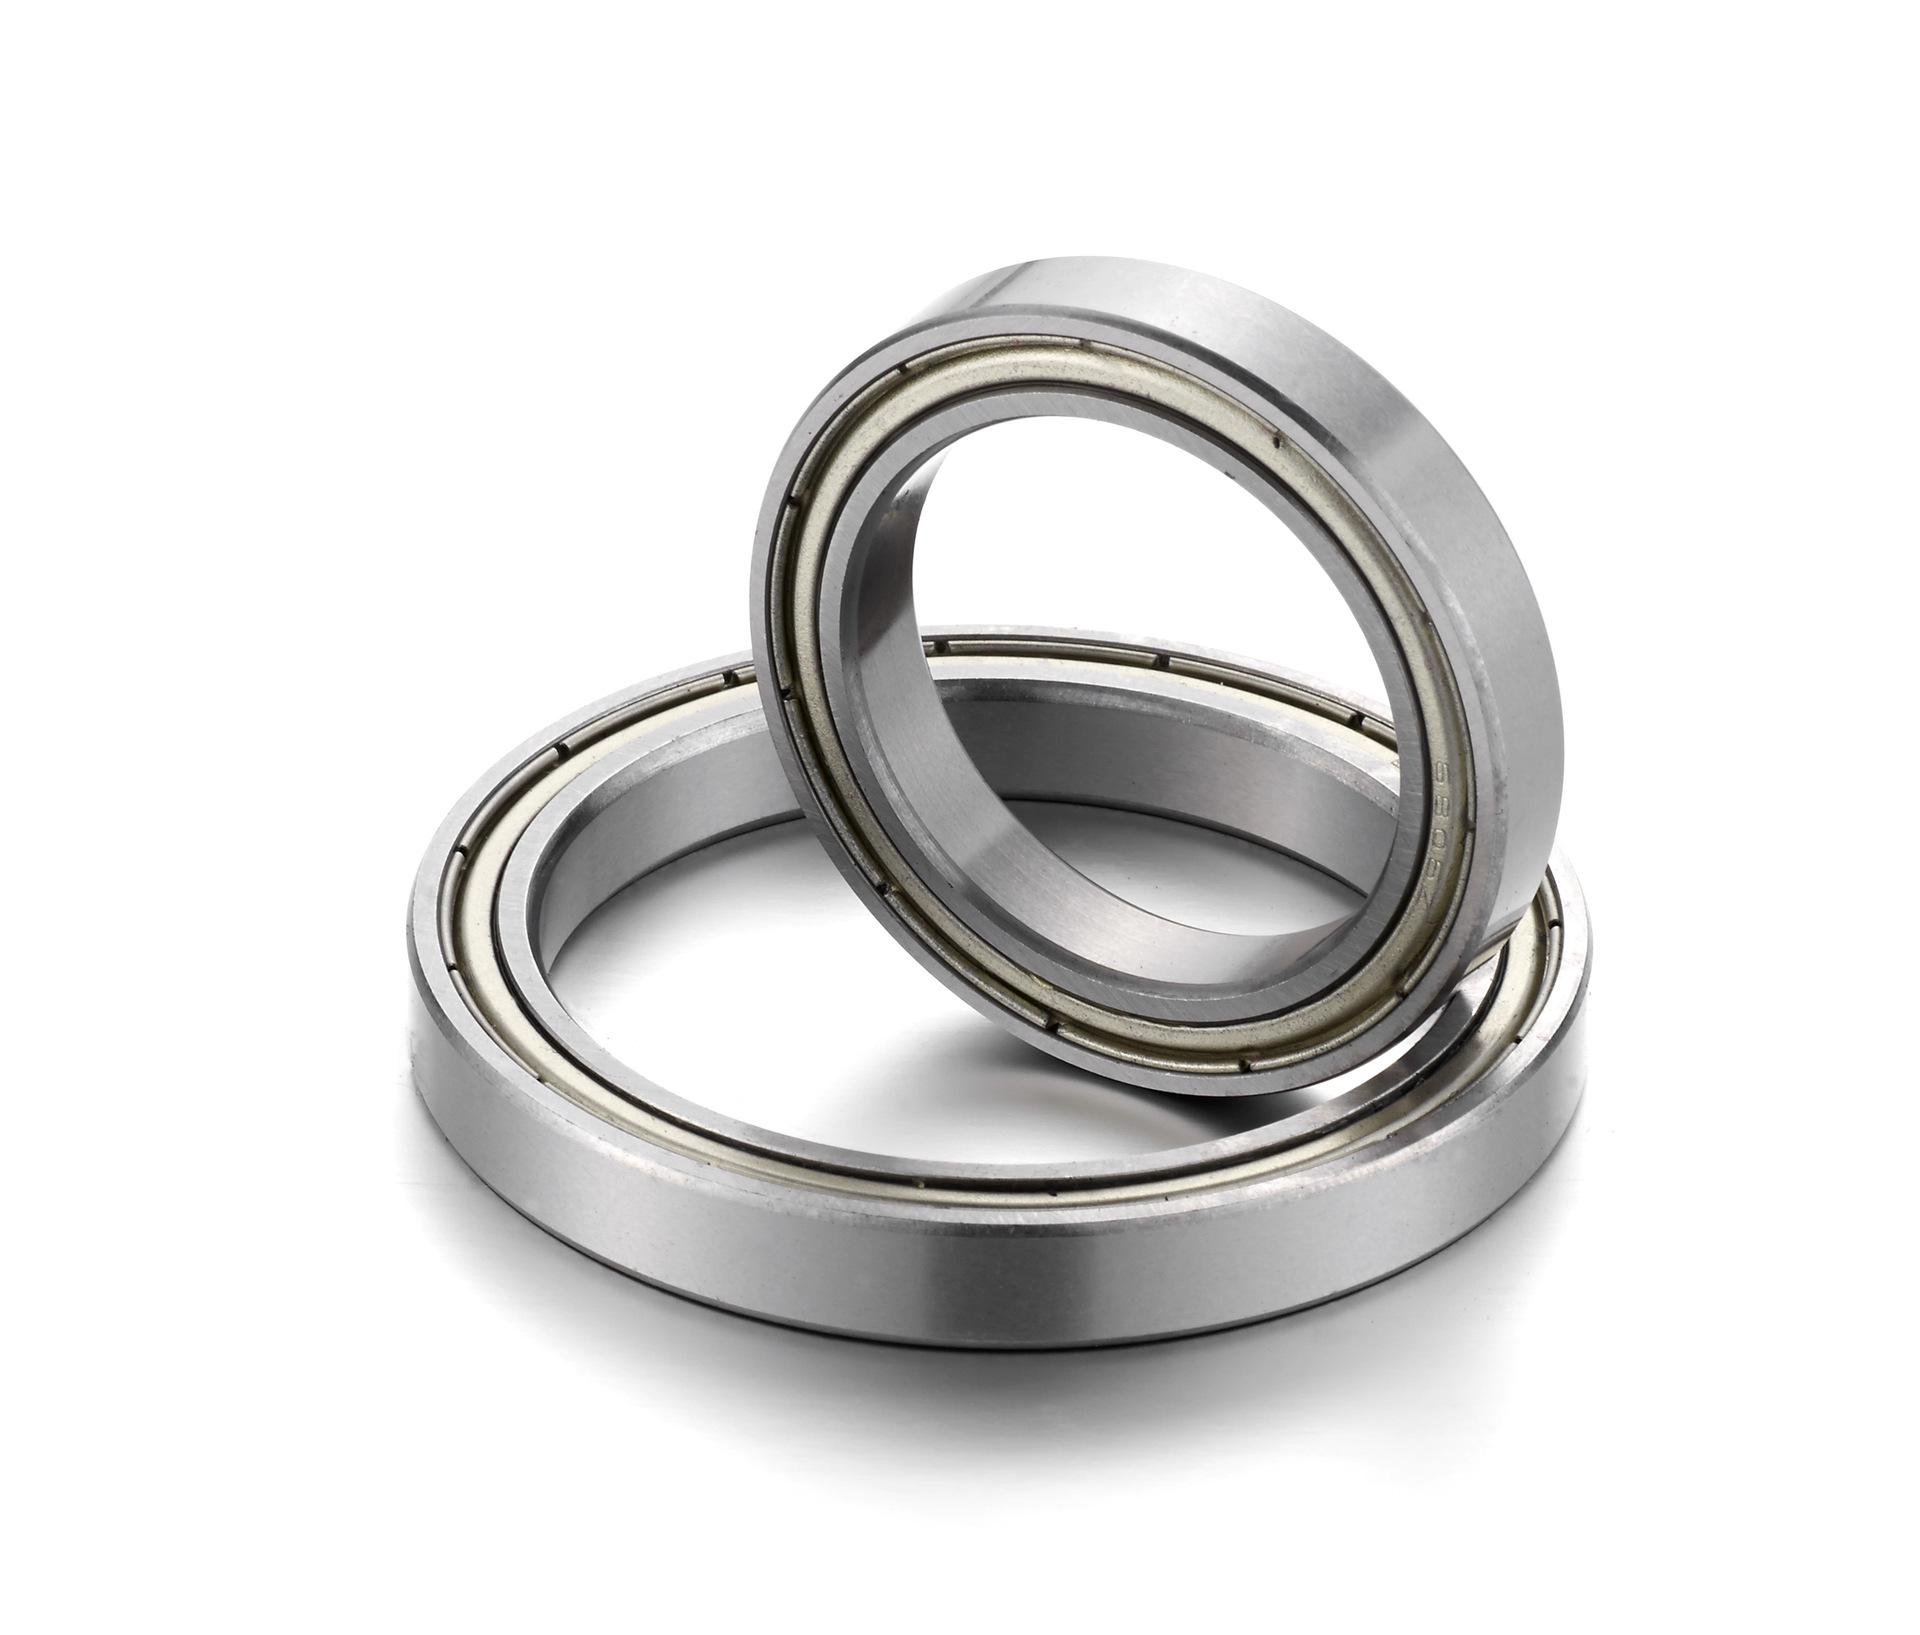 6840M 200x250x24mm Metric Thin Section Bearings 61840M brass cage 2018 hot sale time limited steel rolamentos 6821 2rs abec 1 105x130x13mm metric thin section bearings 61821 rs 6821rs